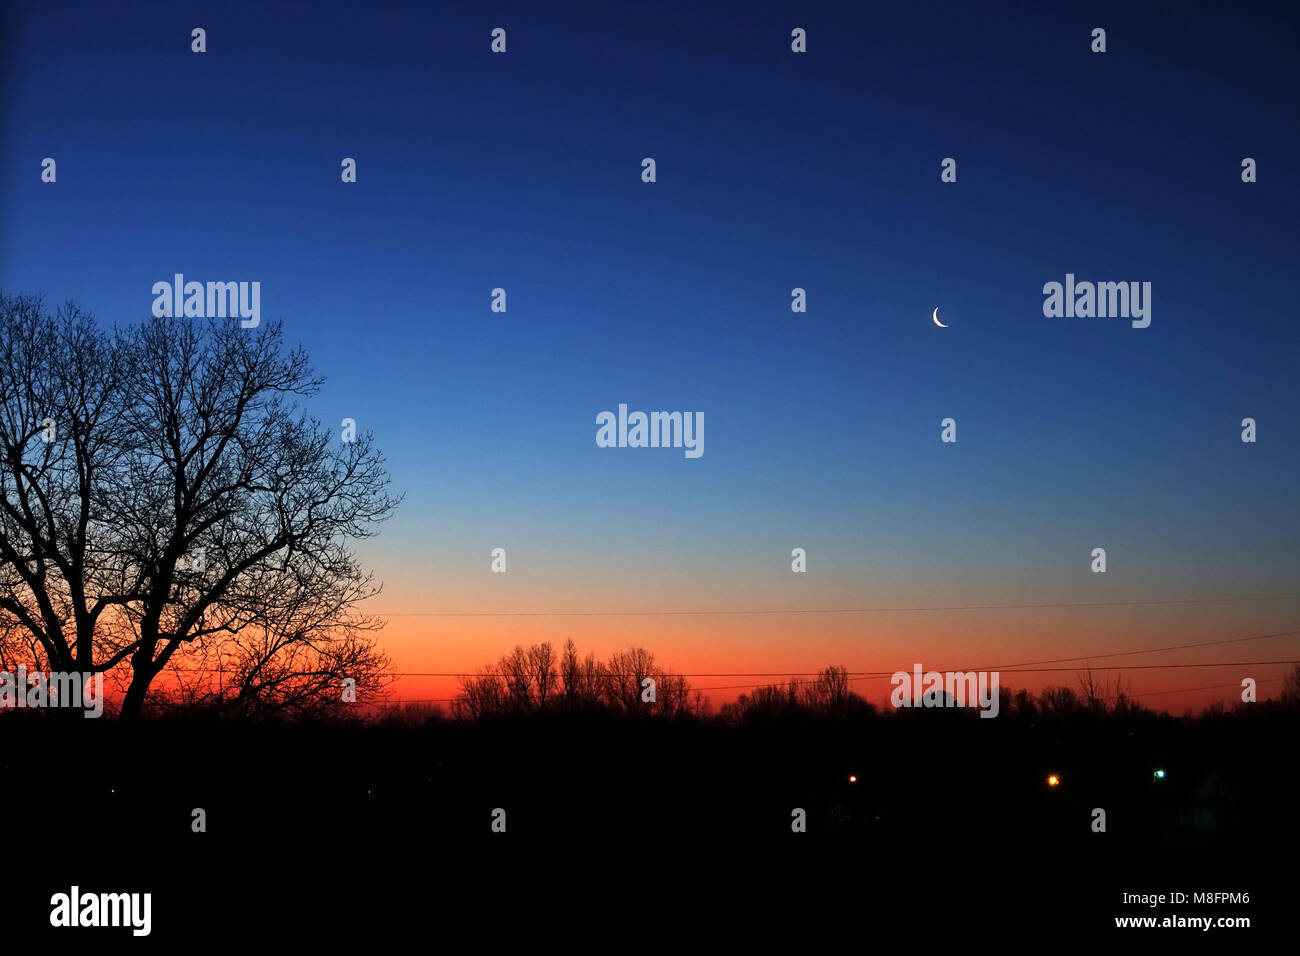 Break of day before sunrise with a crescent moon still visible. - Stock Image